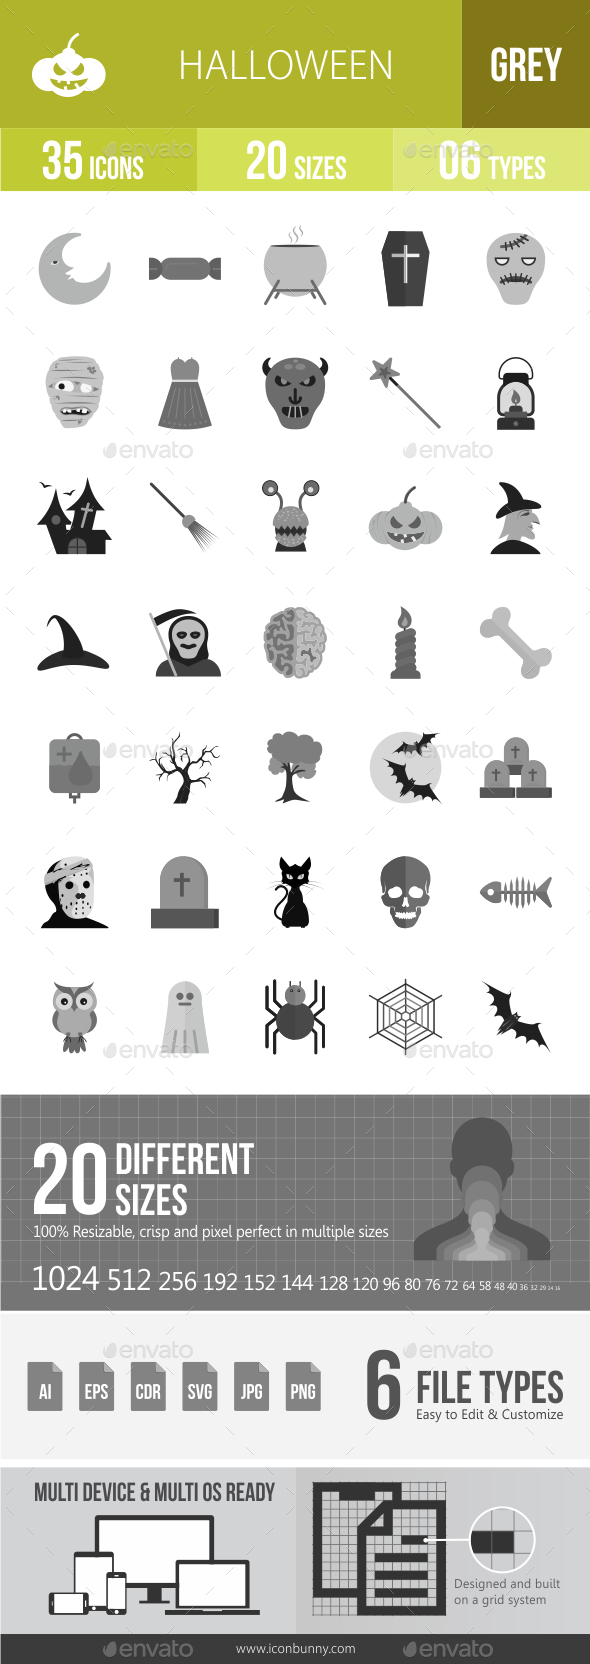 35 Halloween Grey Scale Icons - Icons